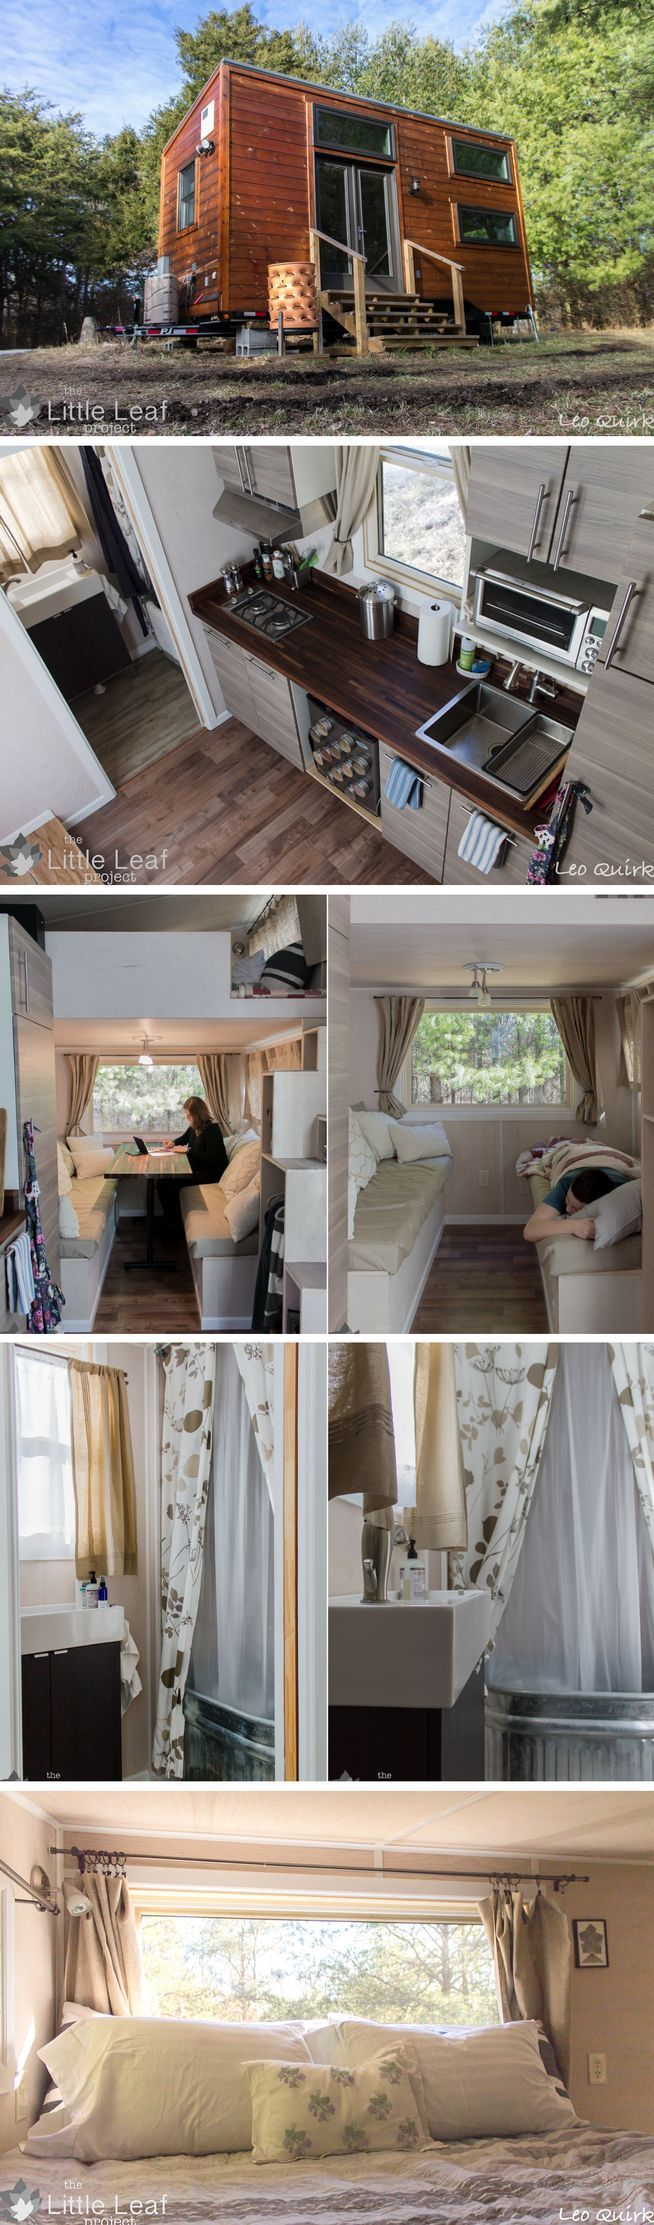 cool The Little Leaf Project tiny house. A 220 sq ft home, currently available for sa... by http://www.dana-homedecor.xyz/tiny-homes/the-little-leaf-project-tiny-house-a-220-sq-ft-home-currently-available-for-sa/